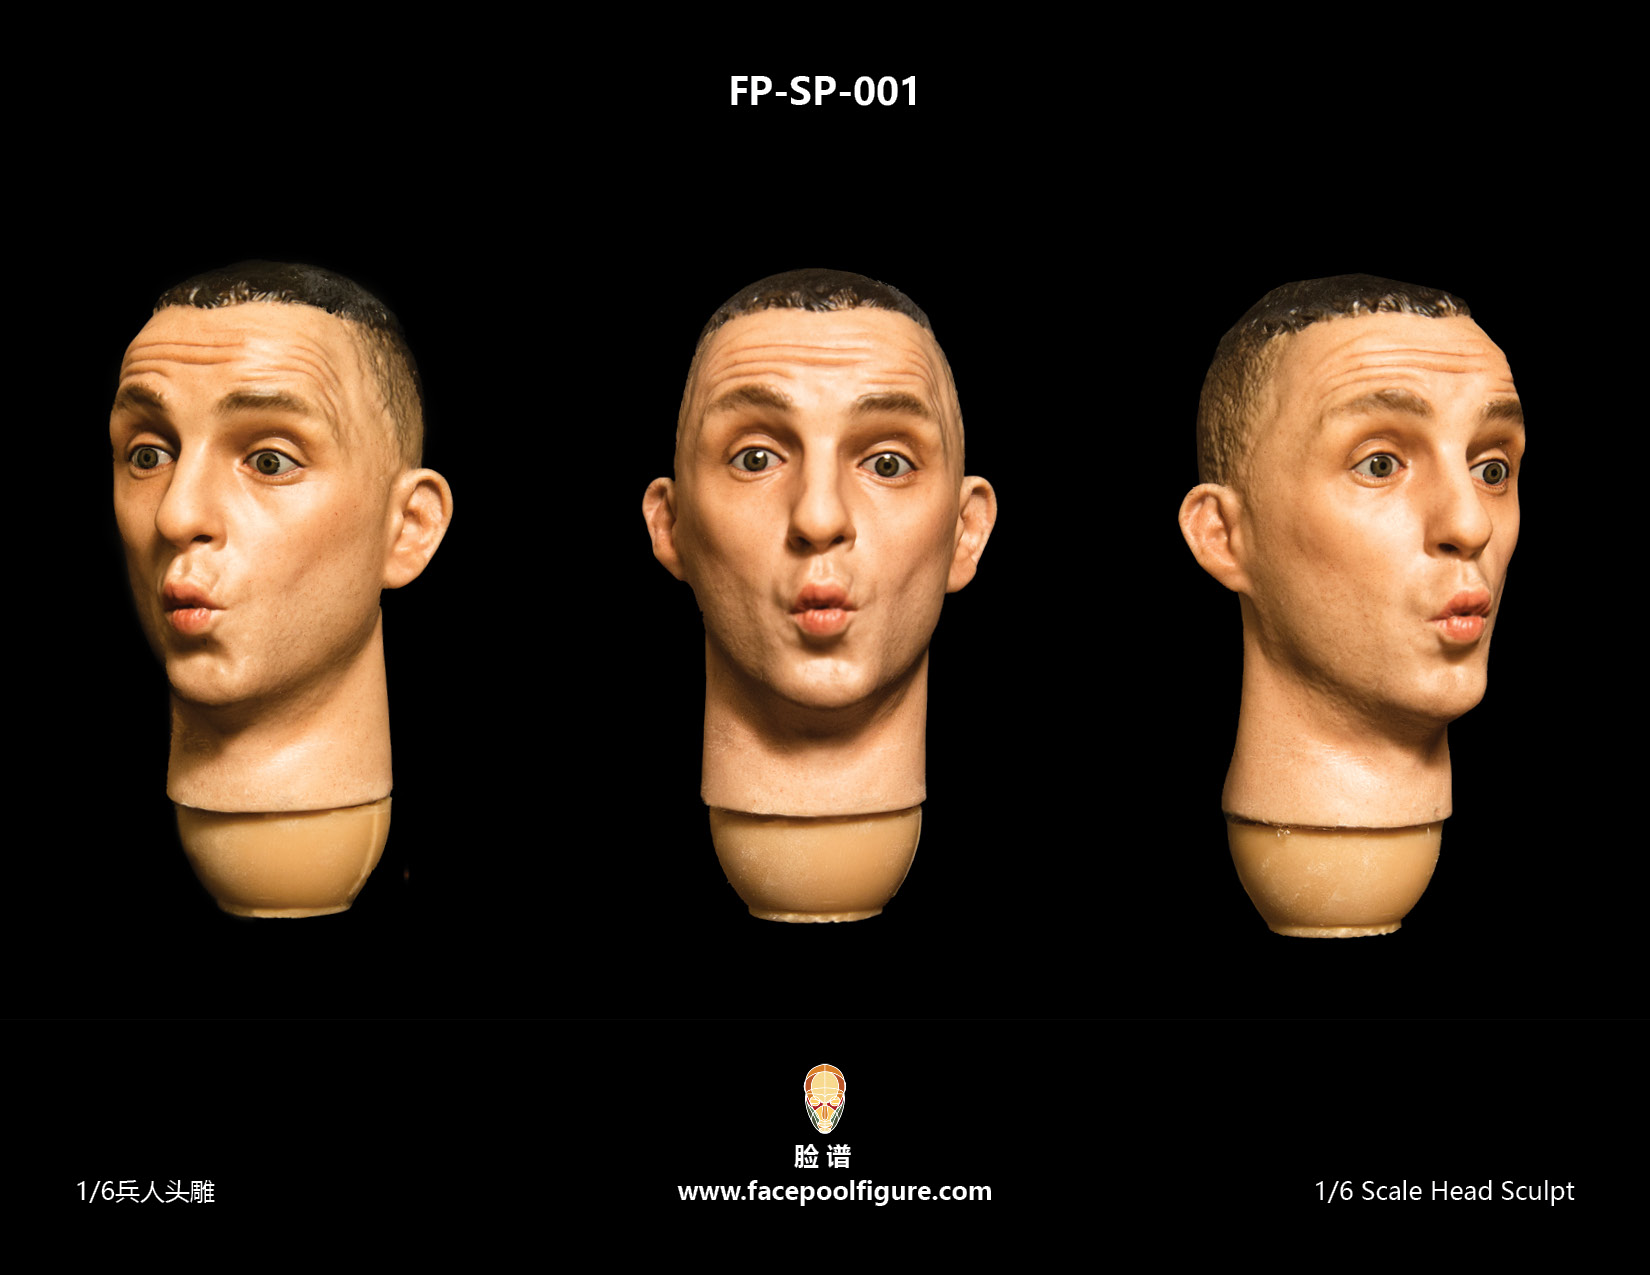 FacepoolFigure 1/6 Male Head Sculpt With Expression FP-SP-001